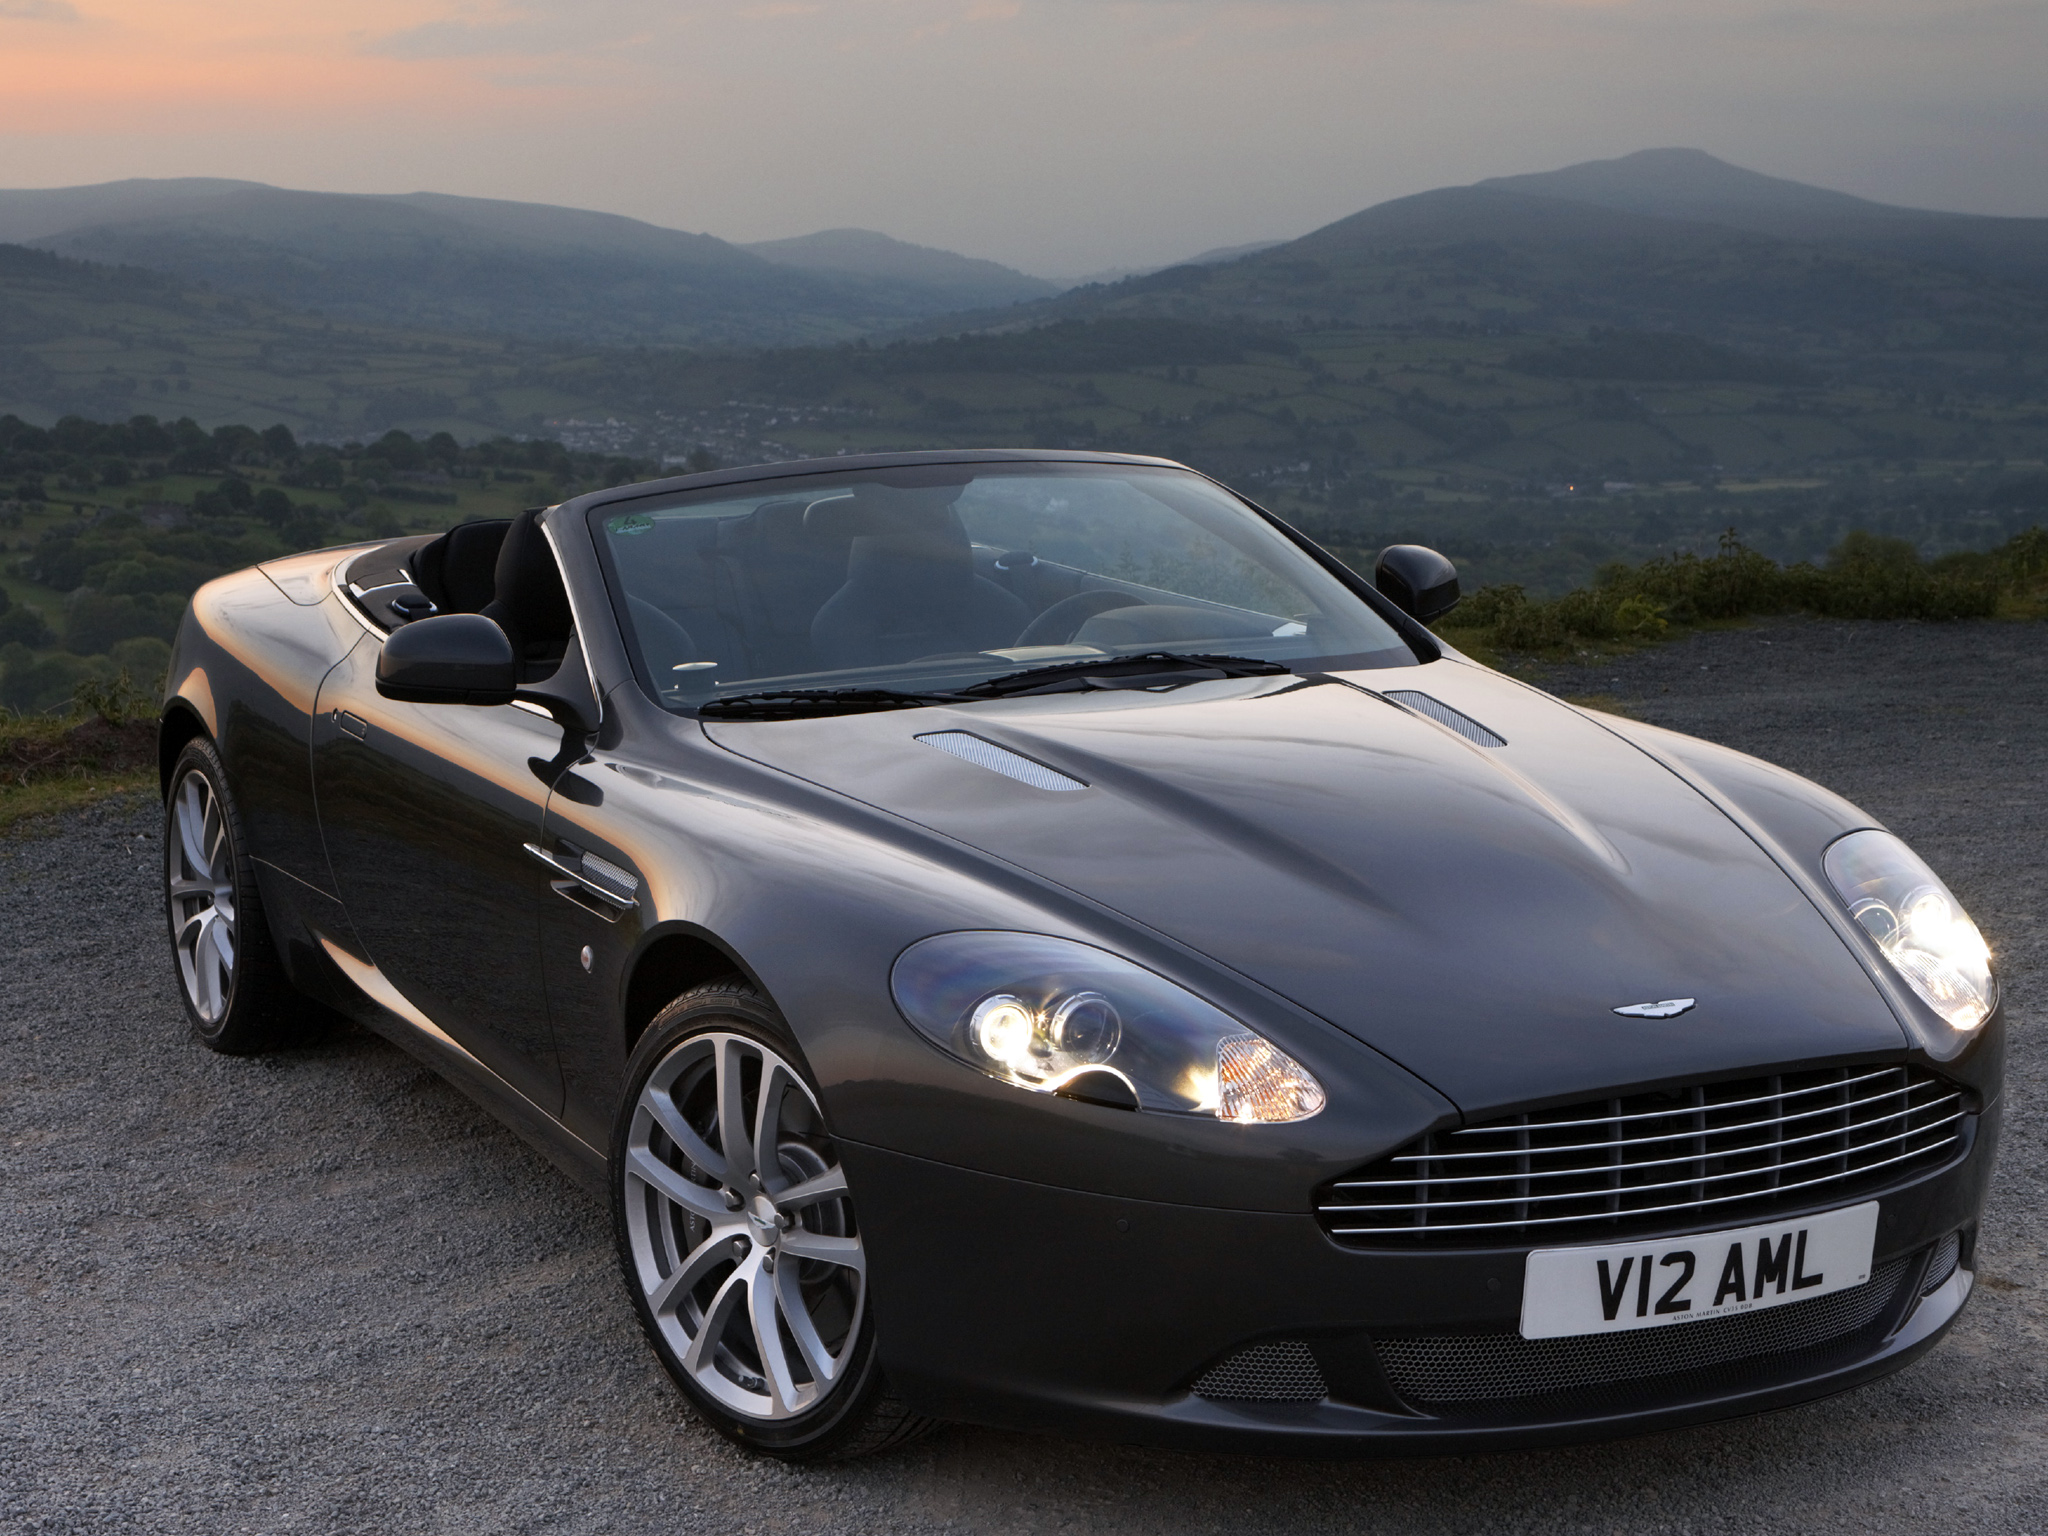 Aston Martin DB9 Volante Free Download Image Of Wallpaper